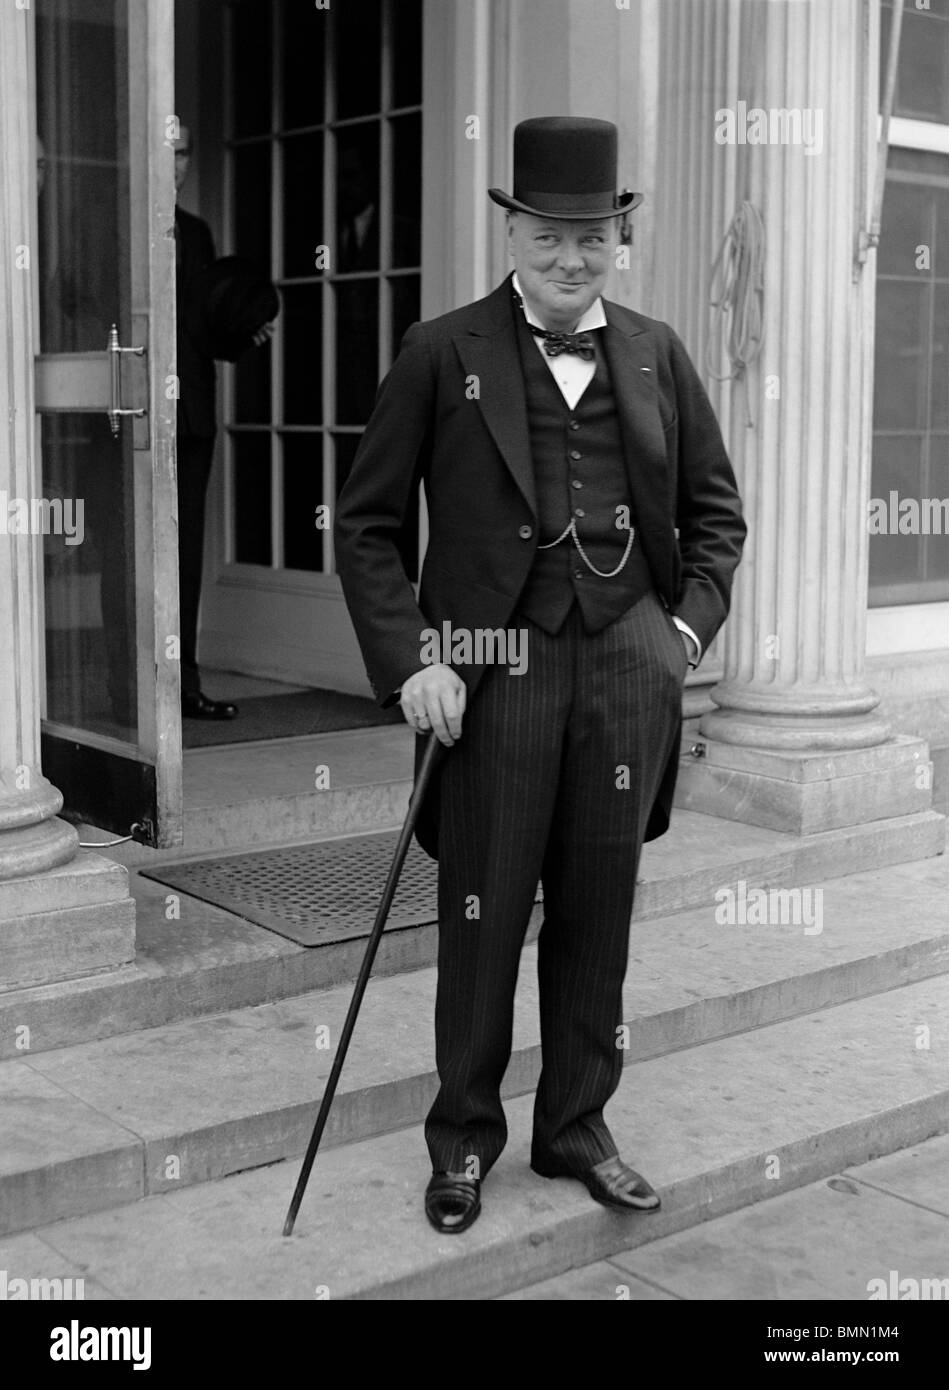 Vintage 1920s photo of Winston Churchill (1874 - 1965) - Conservative (formerly Liberal) statesman and twice UK - Stock Image